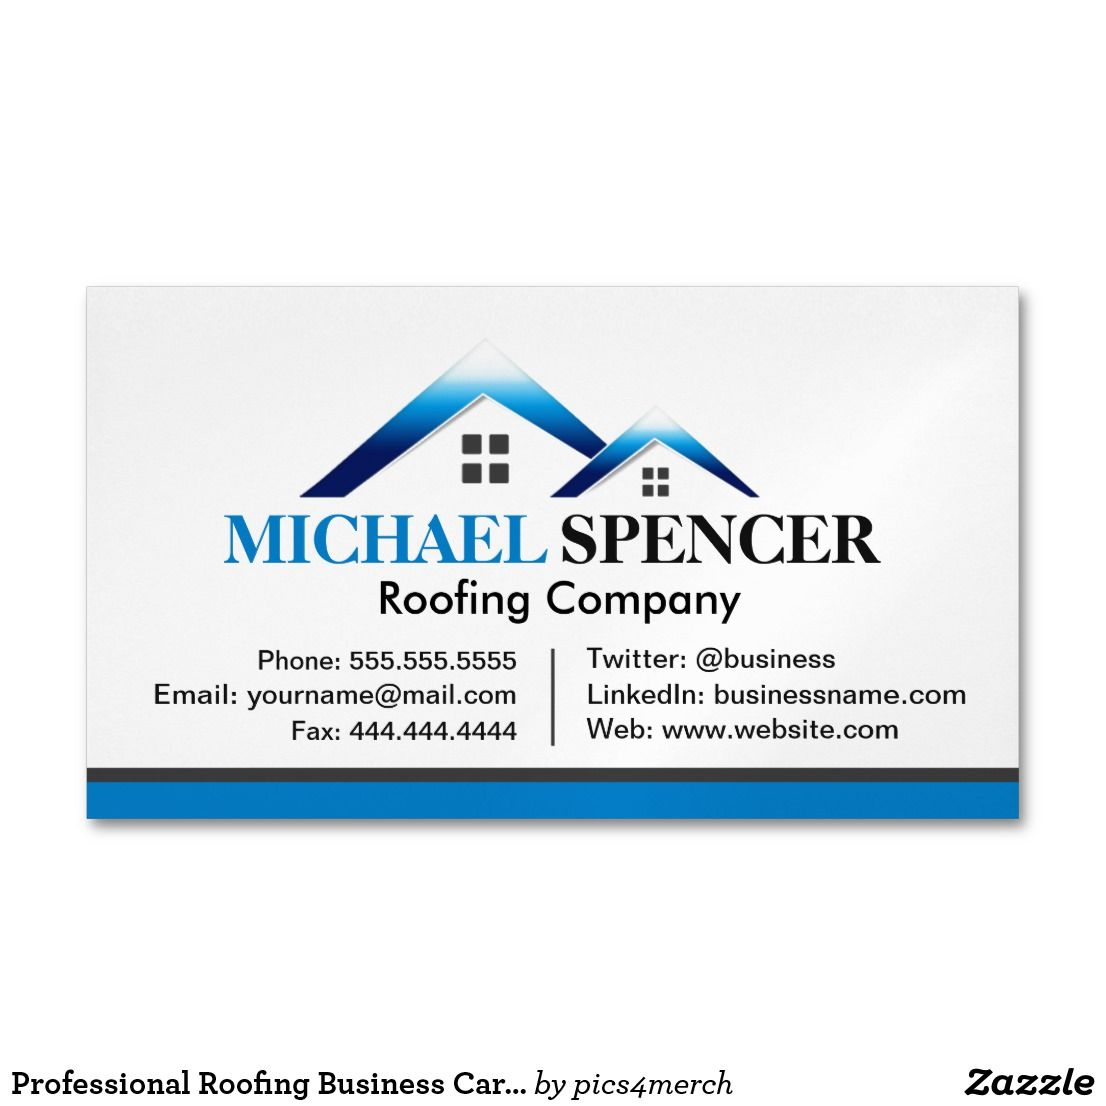 Professional Roofing Business Card Template Zazzle Com In 2020 Roofing Business Business Card Template Company Business Cards